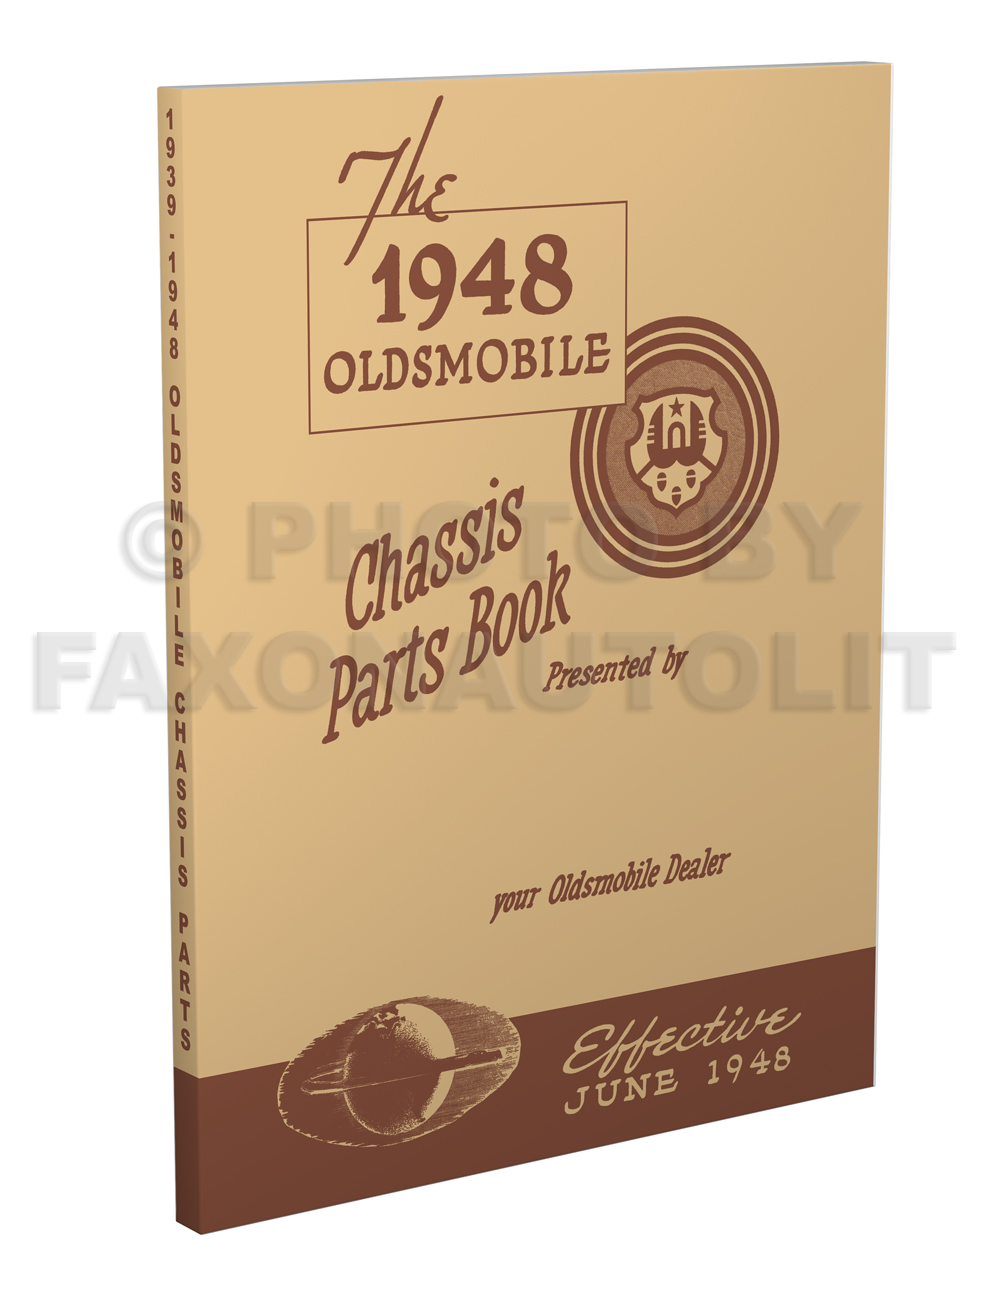 1939-1948 Oldsmobile Master Chassis Parts Book Reprint